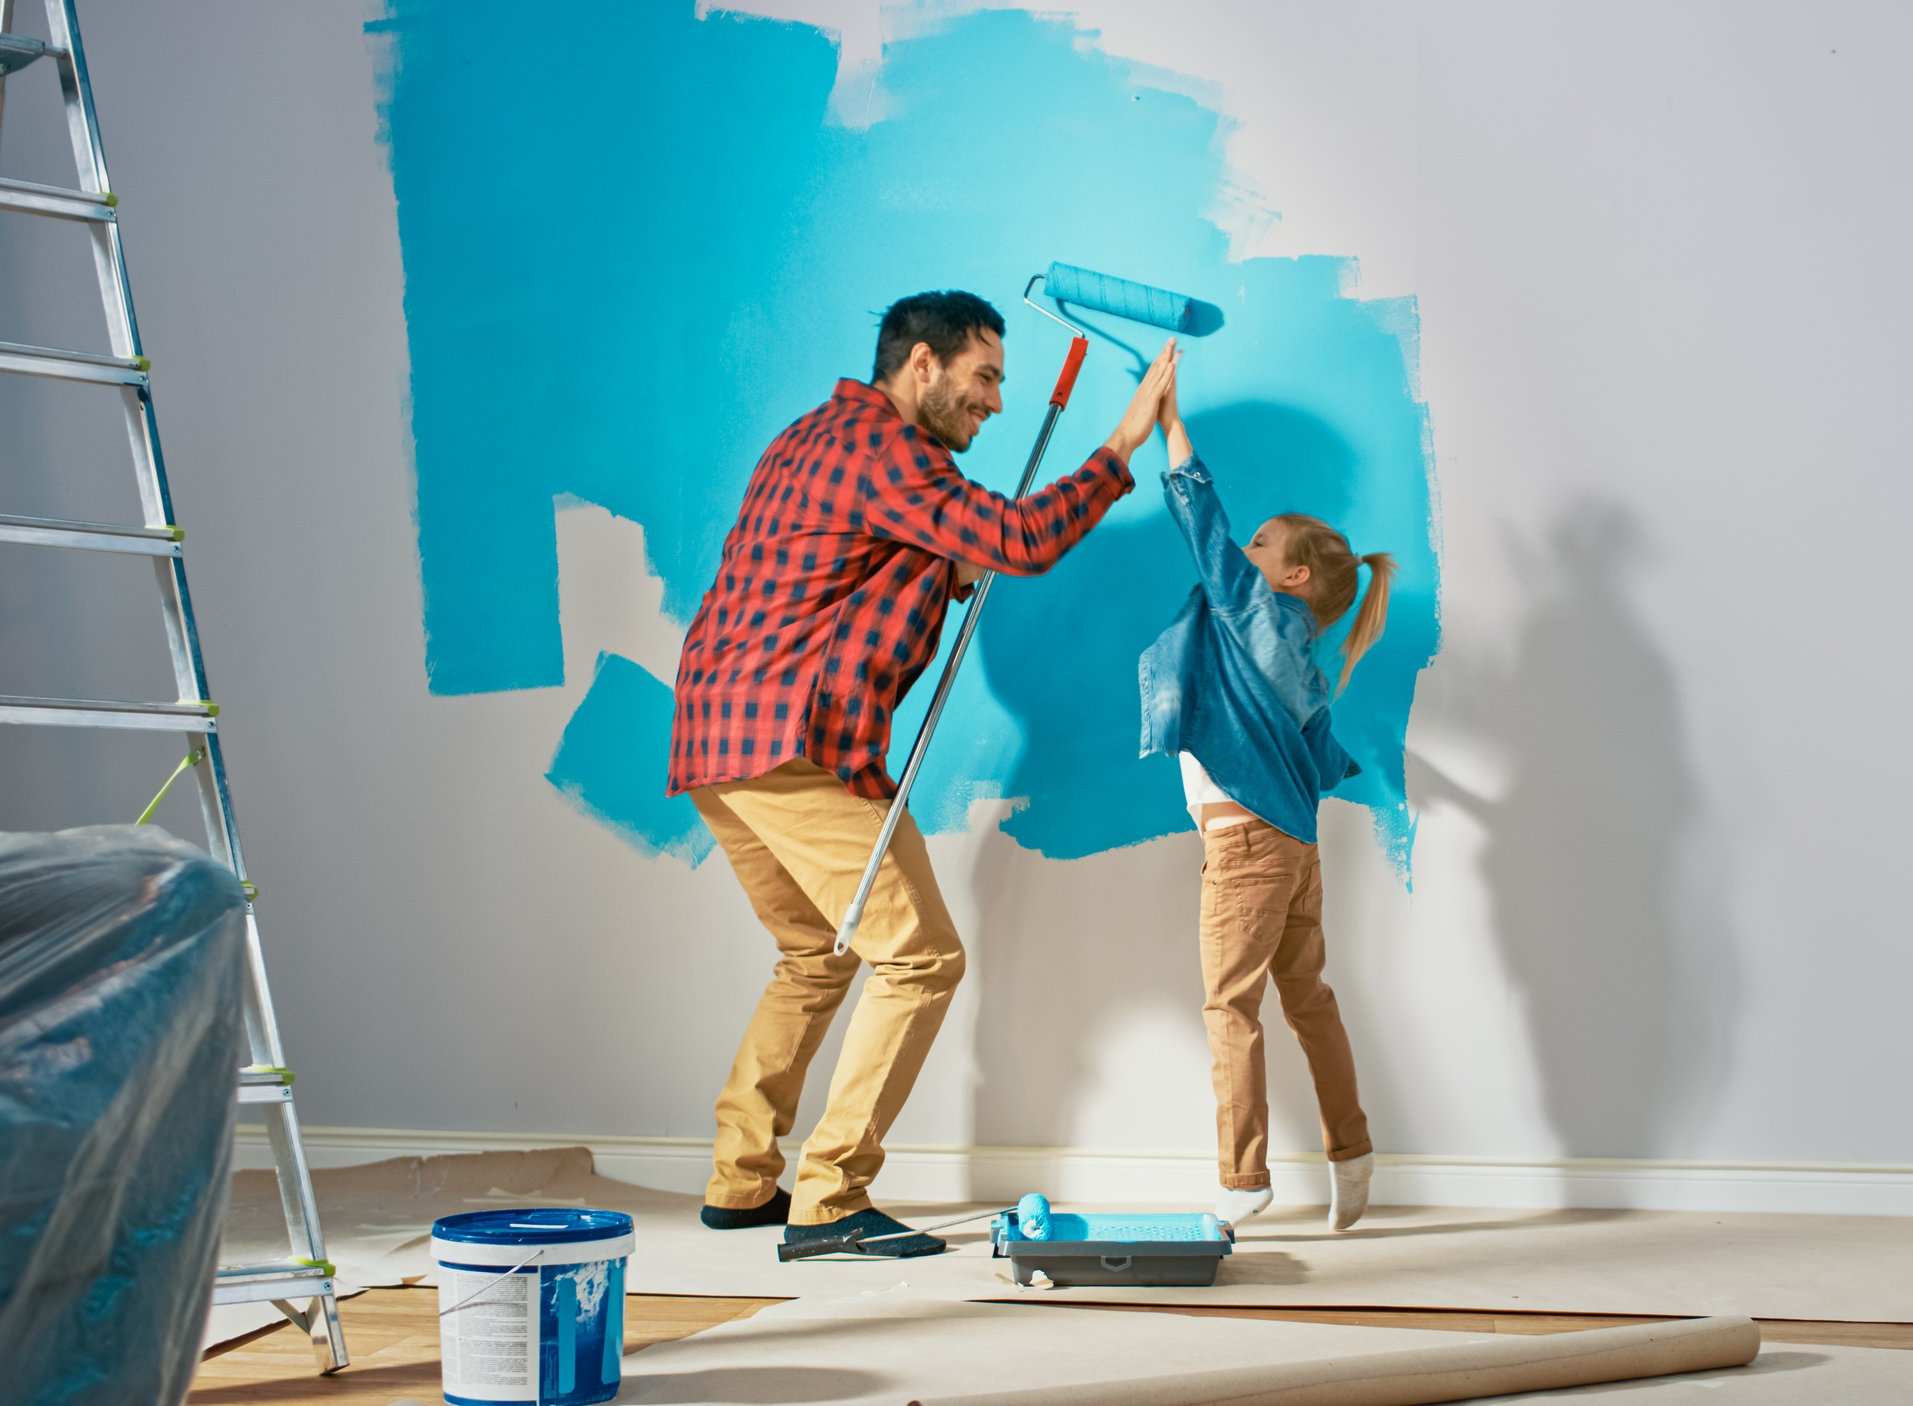 Have fun painting a room together as a family!!